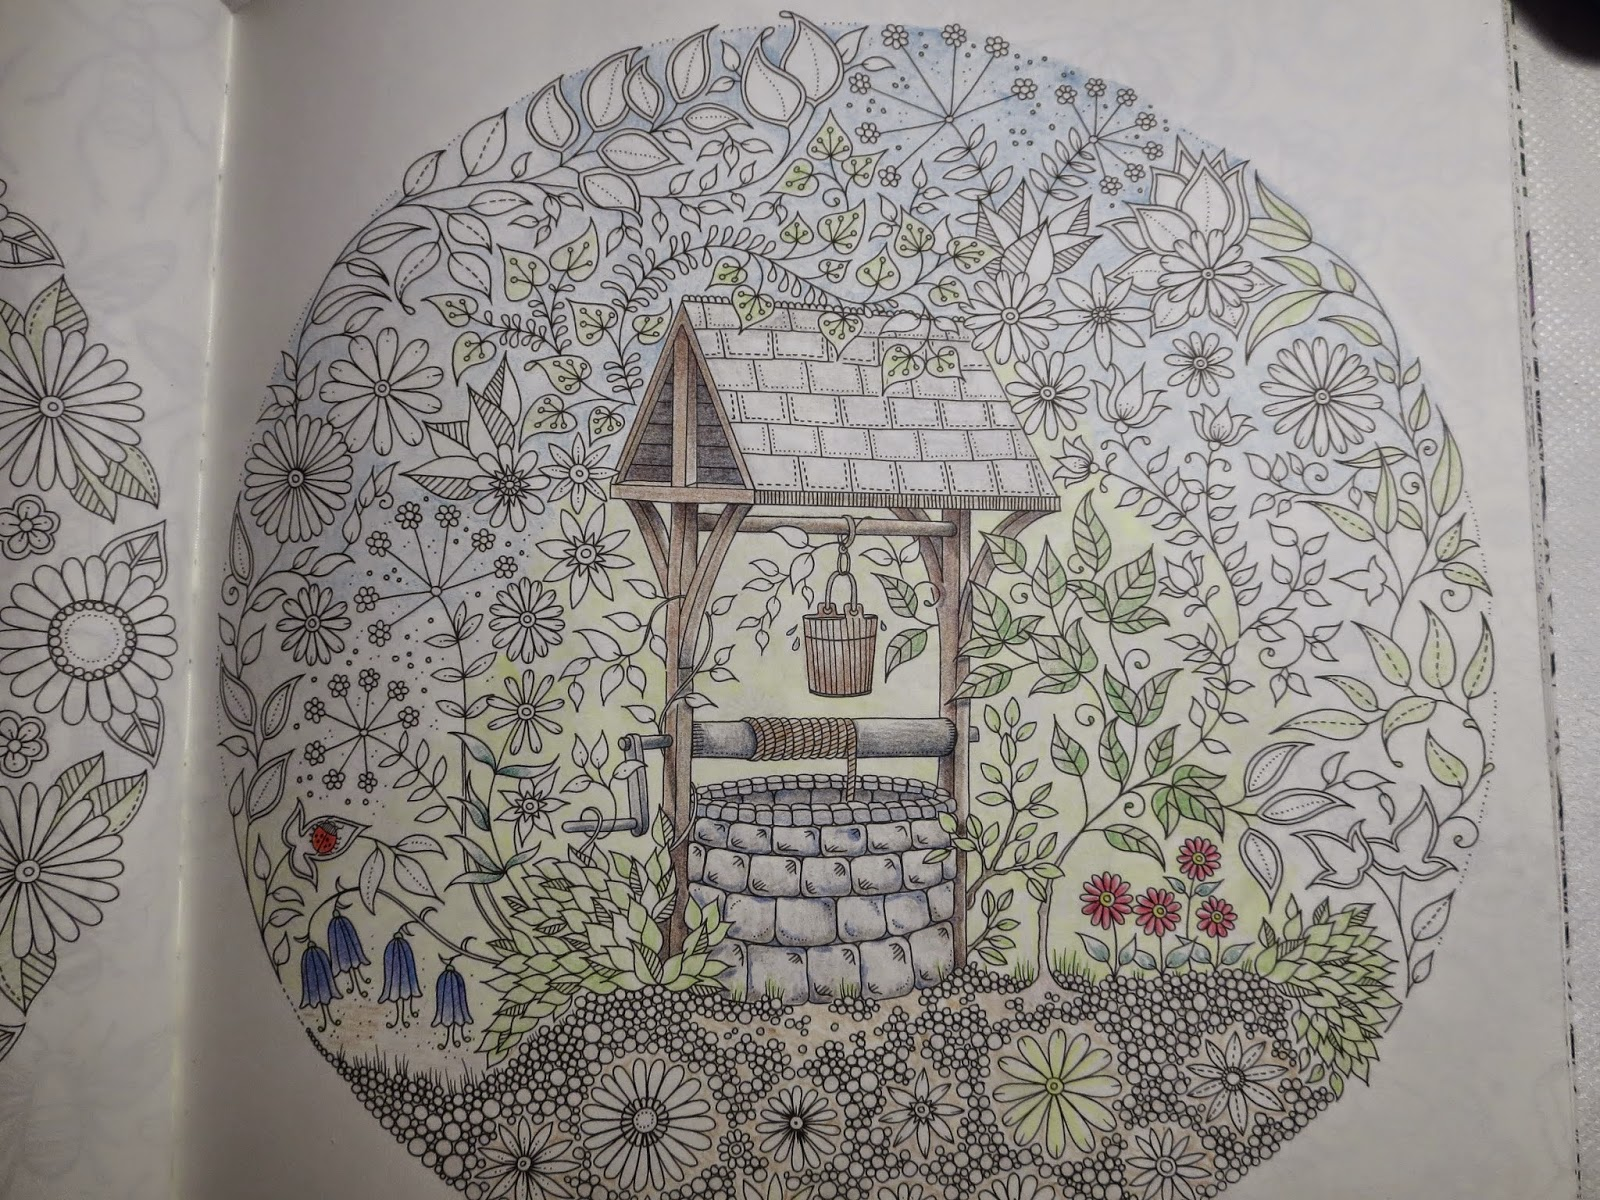 my secret garden colouring book part 2 - My Secret Garden Coloring Book